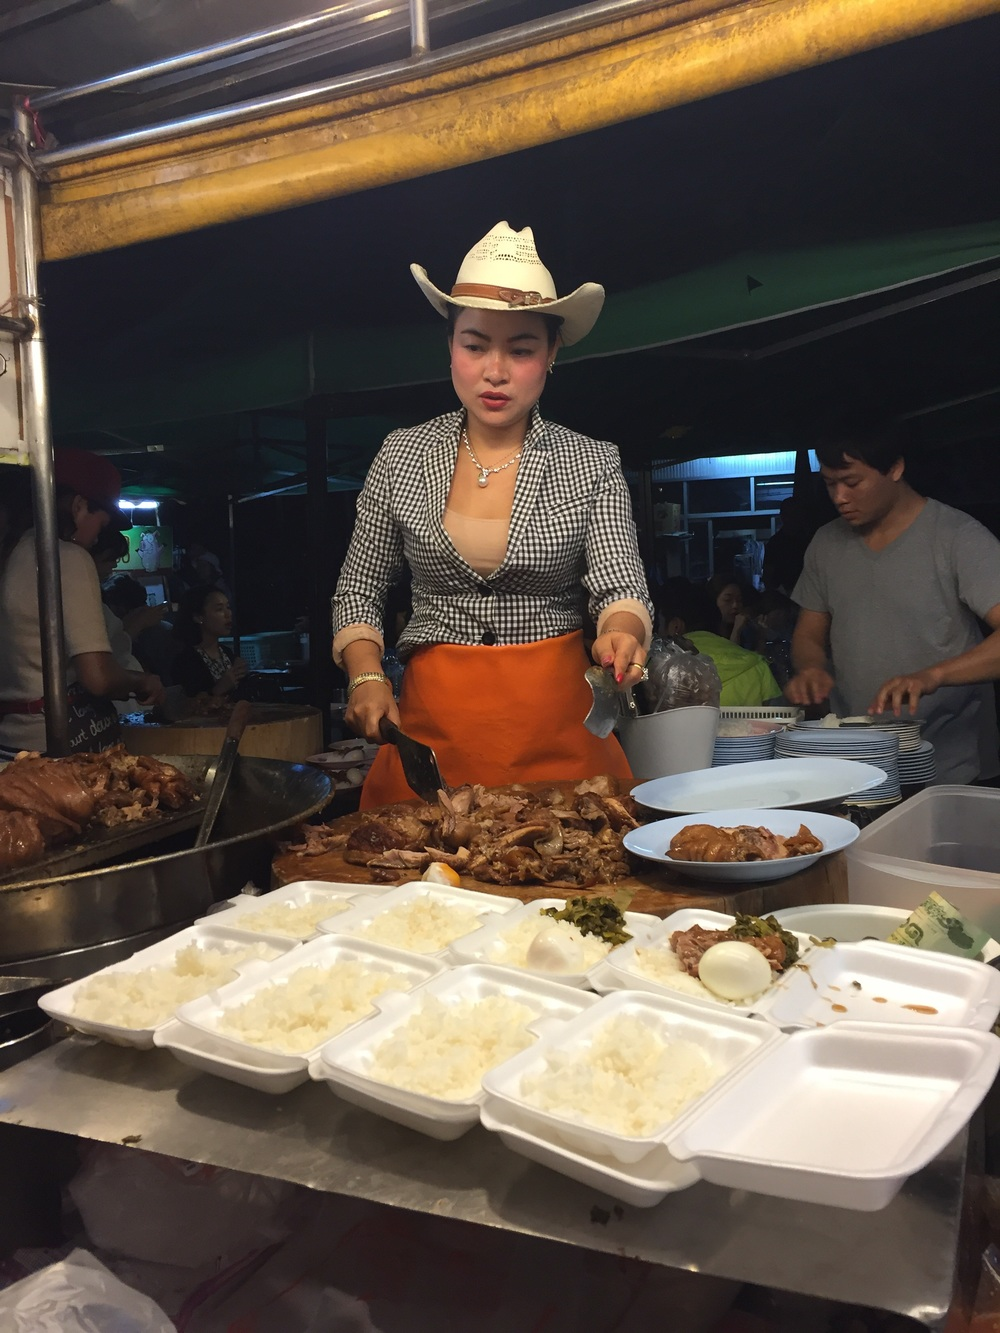 Chiang Mai is said to have the best food in Thailand, although every region would argue, I would not. This is the famous Cowboy Lady. She serves up some great street food. Thanks Mr. Bourdain for the recommendation.